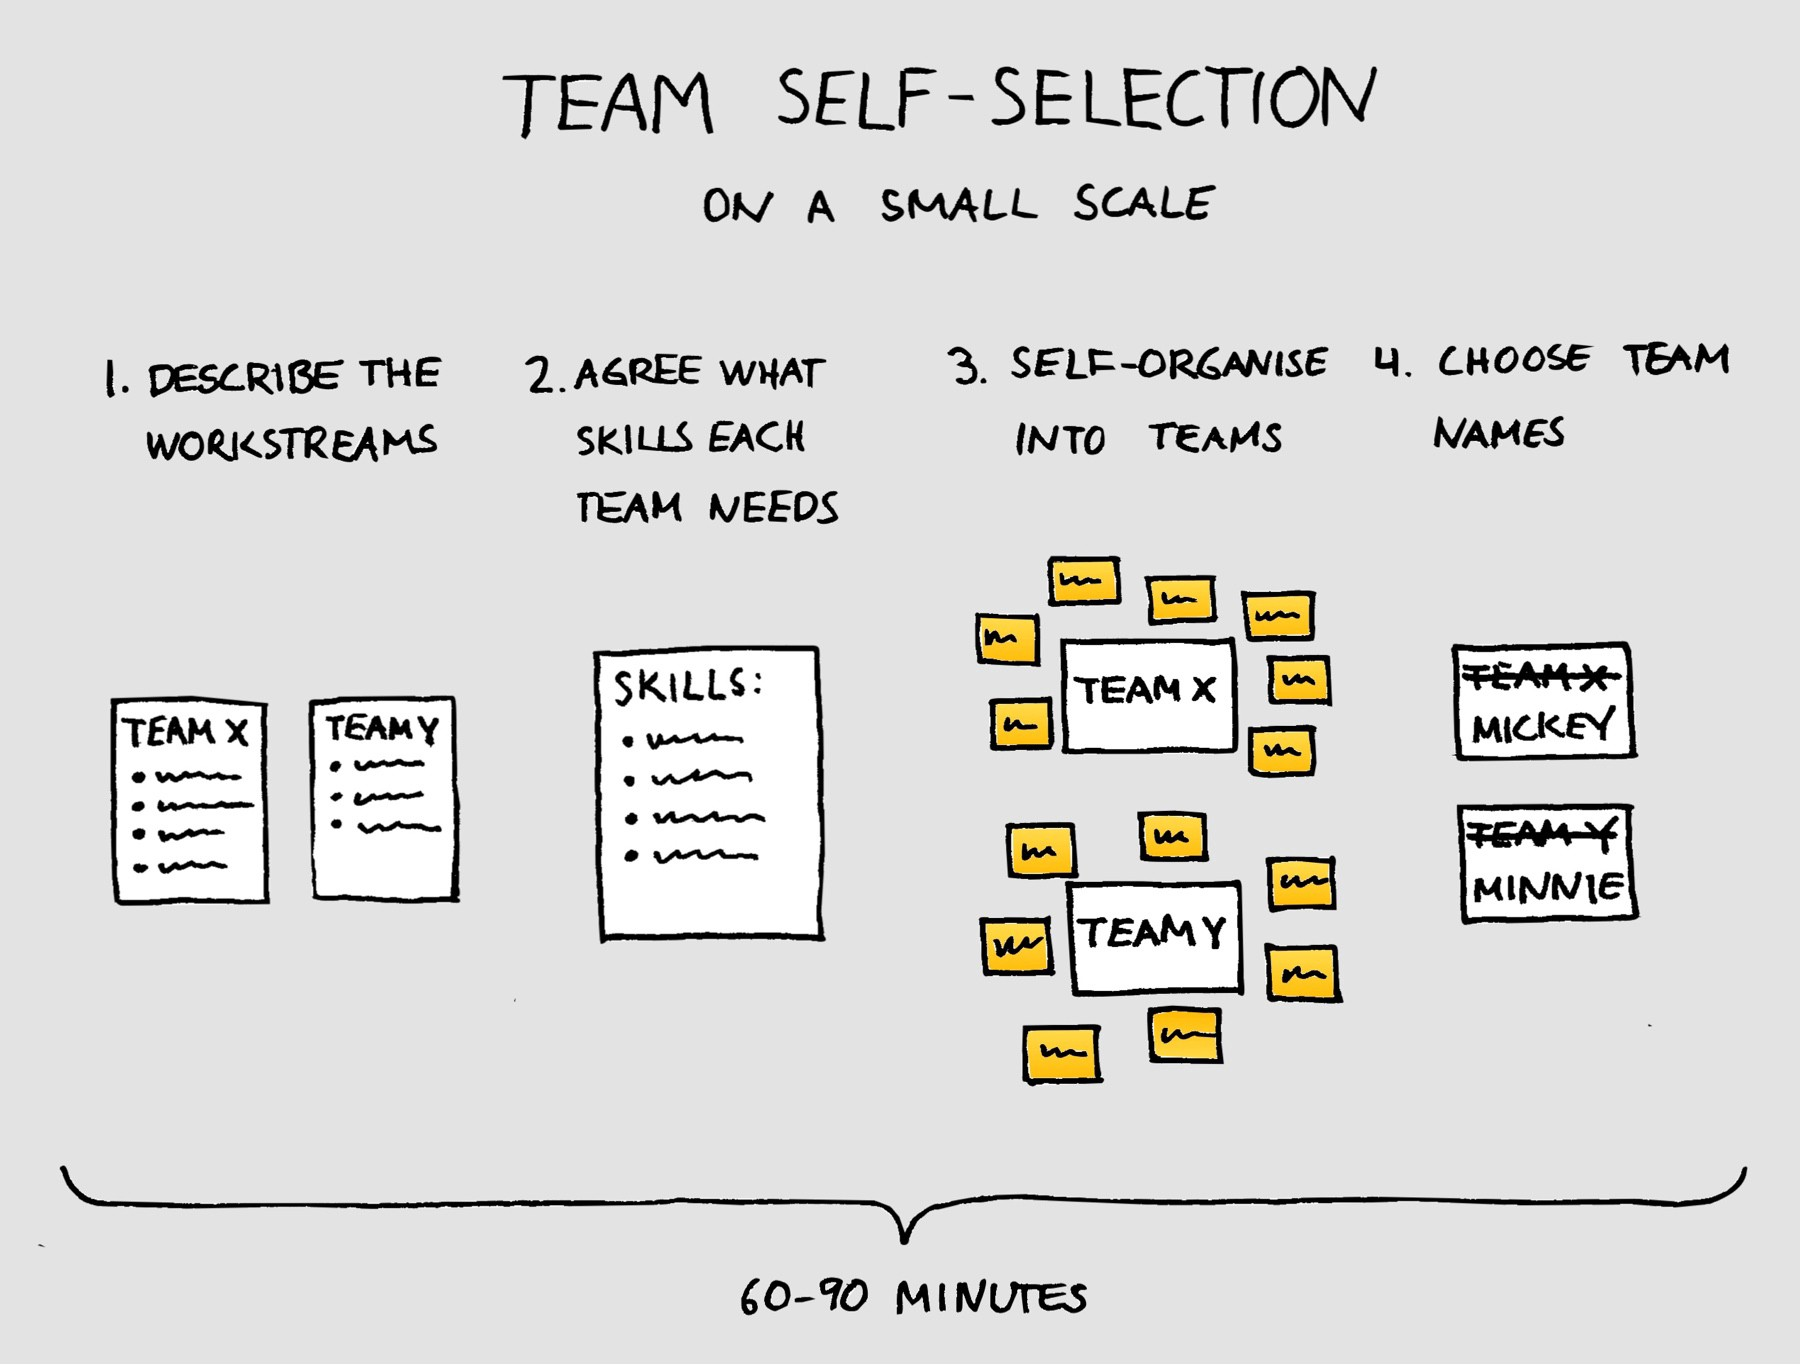 The structure of the self-selection workshop